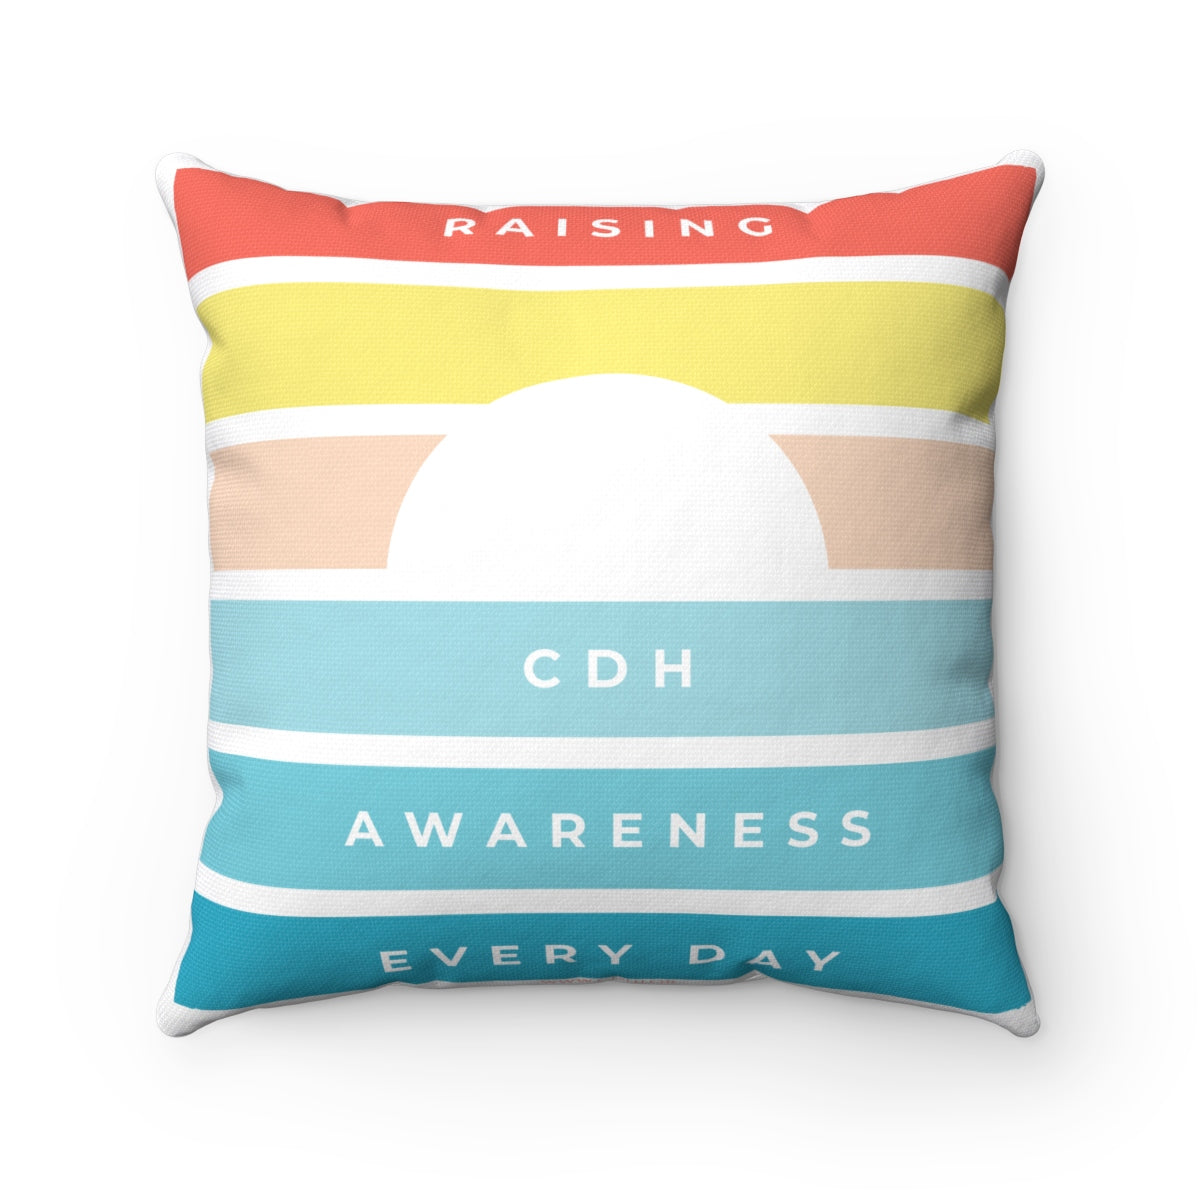 Raising CDH Awareness Every Day Spun Polyester Square Pillow